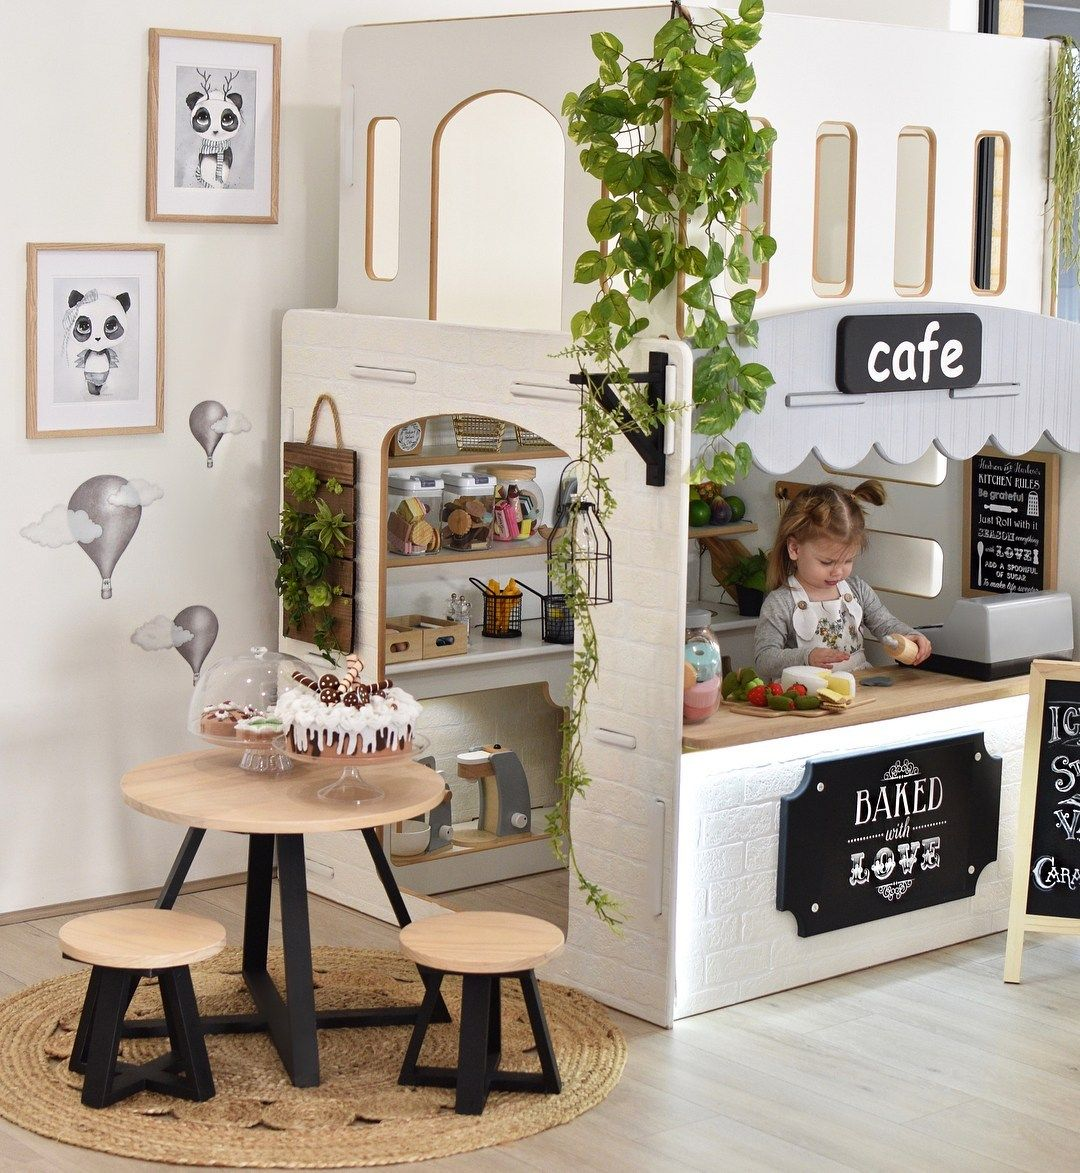 Photo of Children's kitchen & shop – everything for your own children's café!